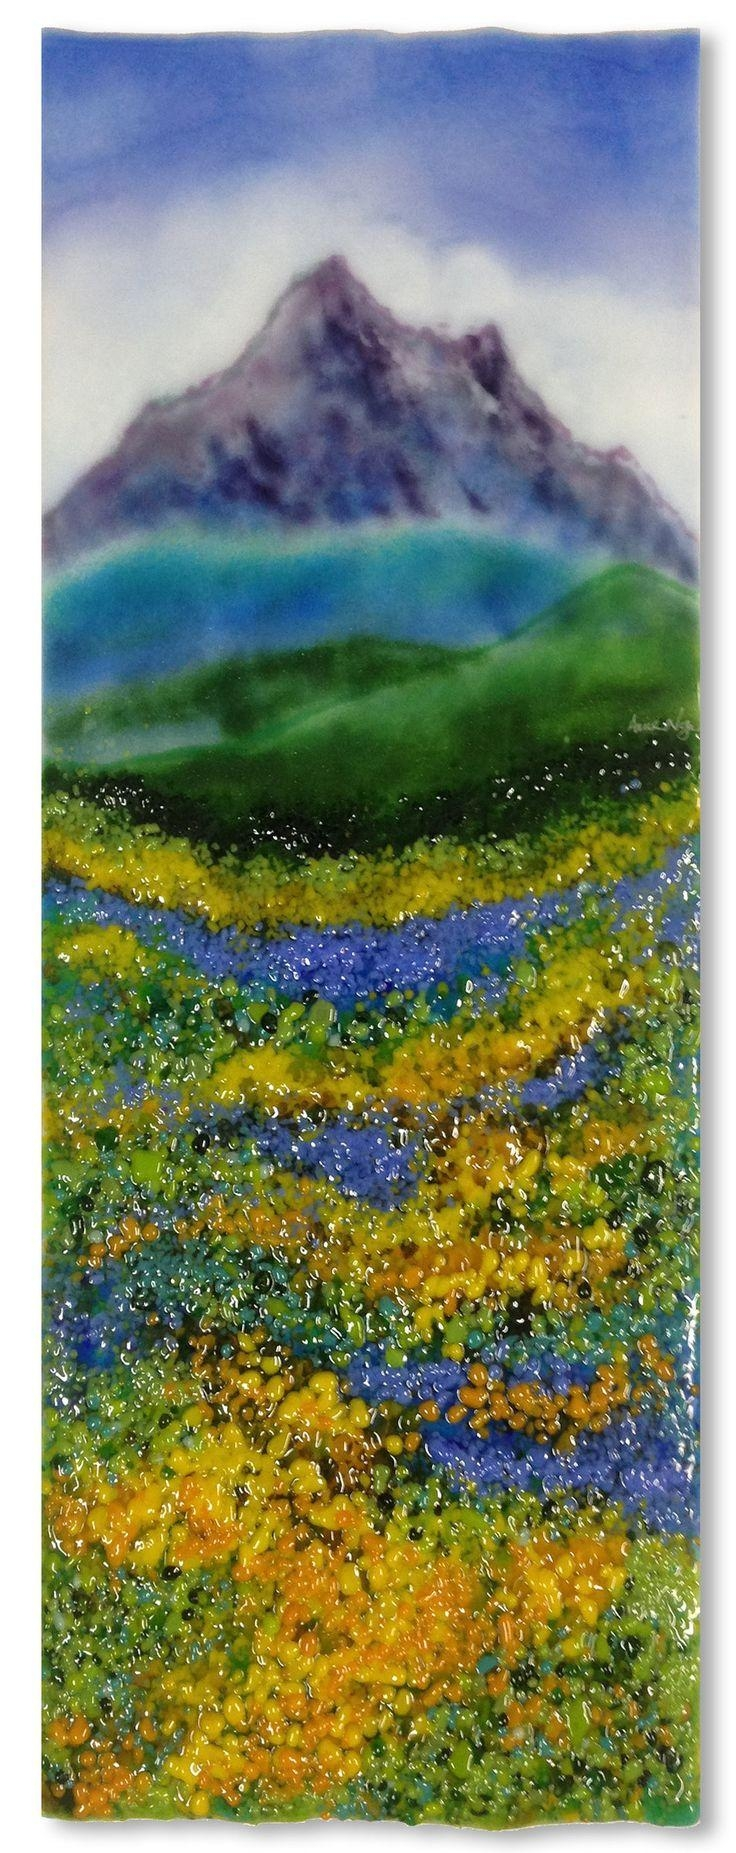 604 Best Glass Fusing Images On Pinterest | Stained Glass, Fused intended for Fused Glass Wall Art Devon